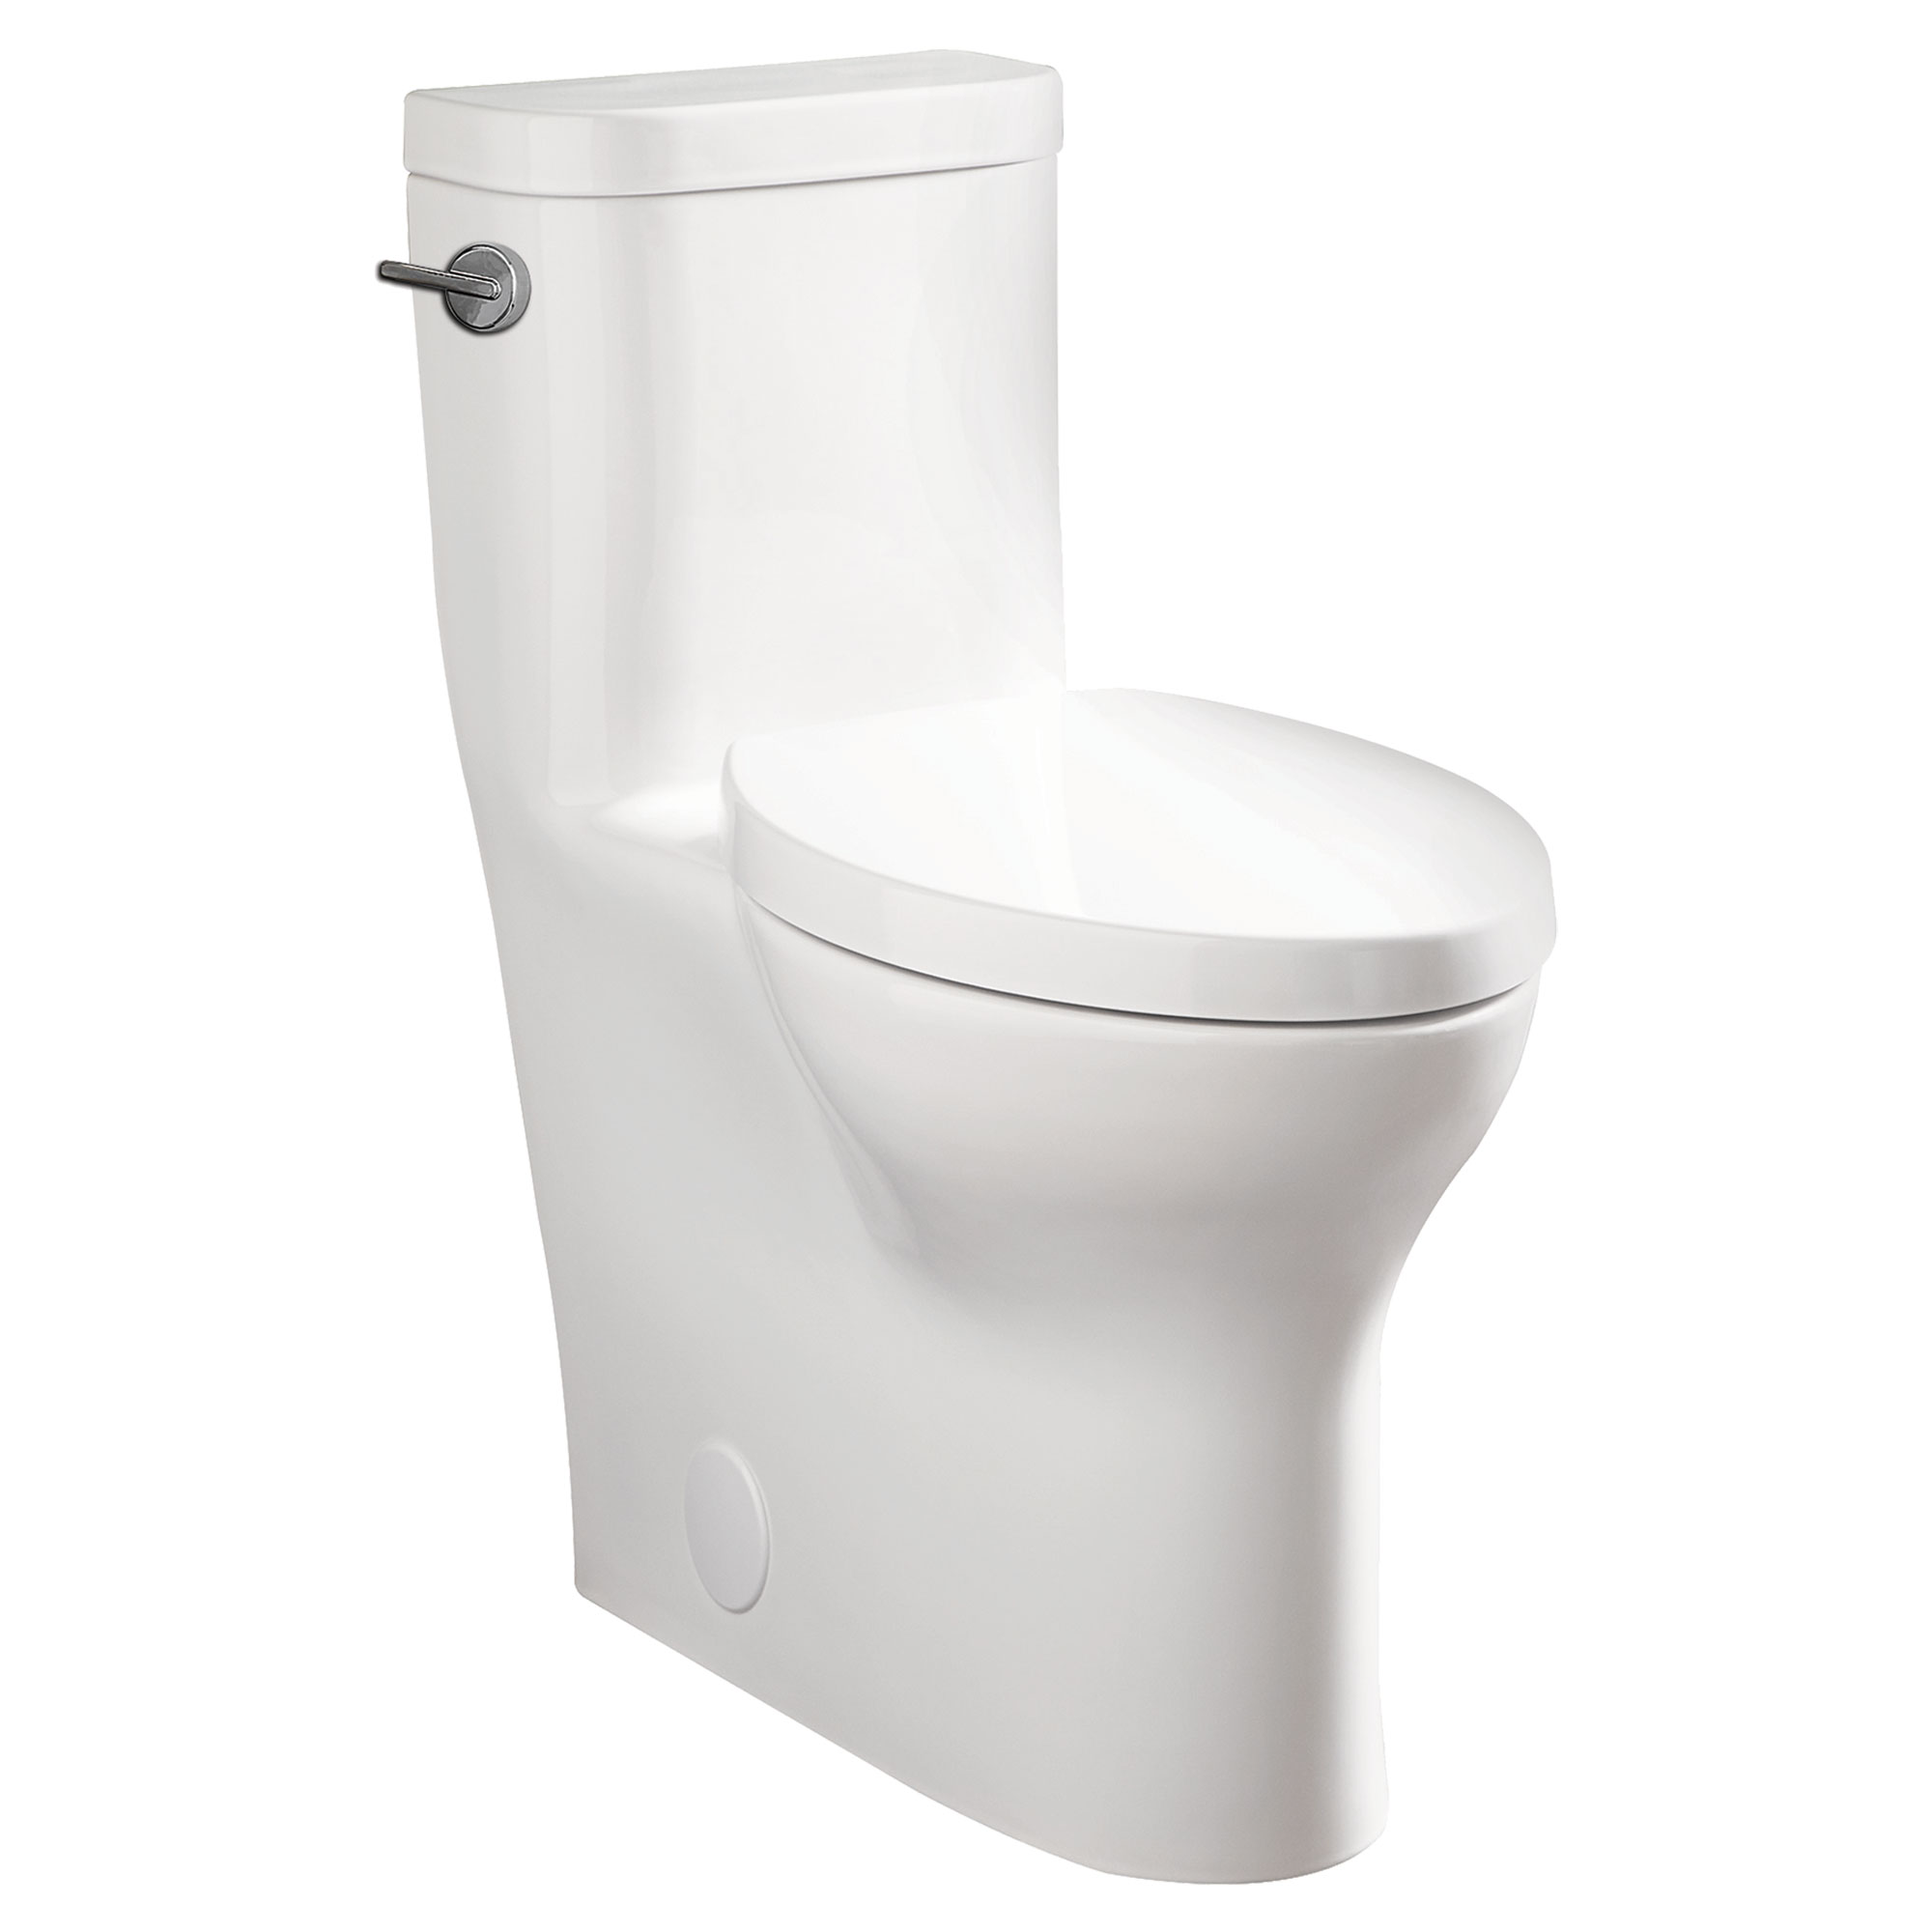 Equility Elongated One-Piece Toilet - Projects Model